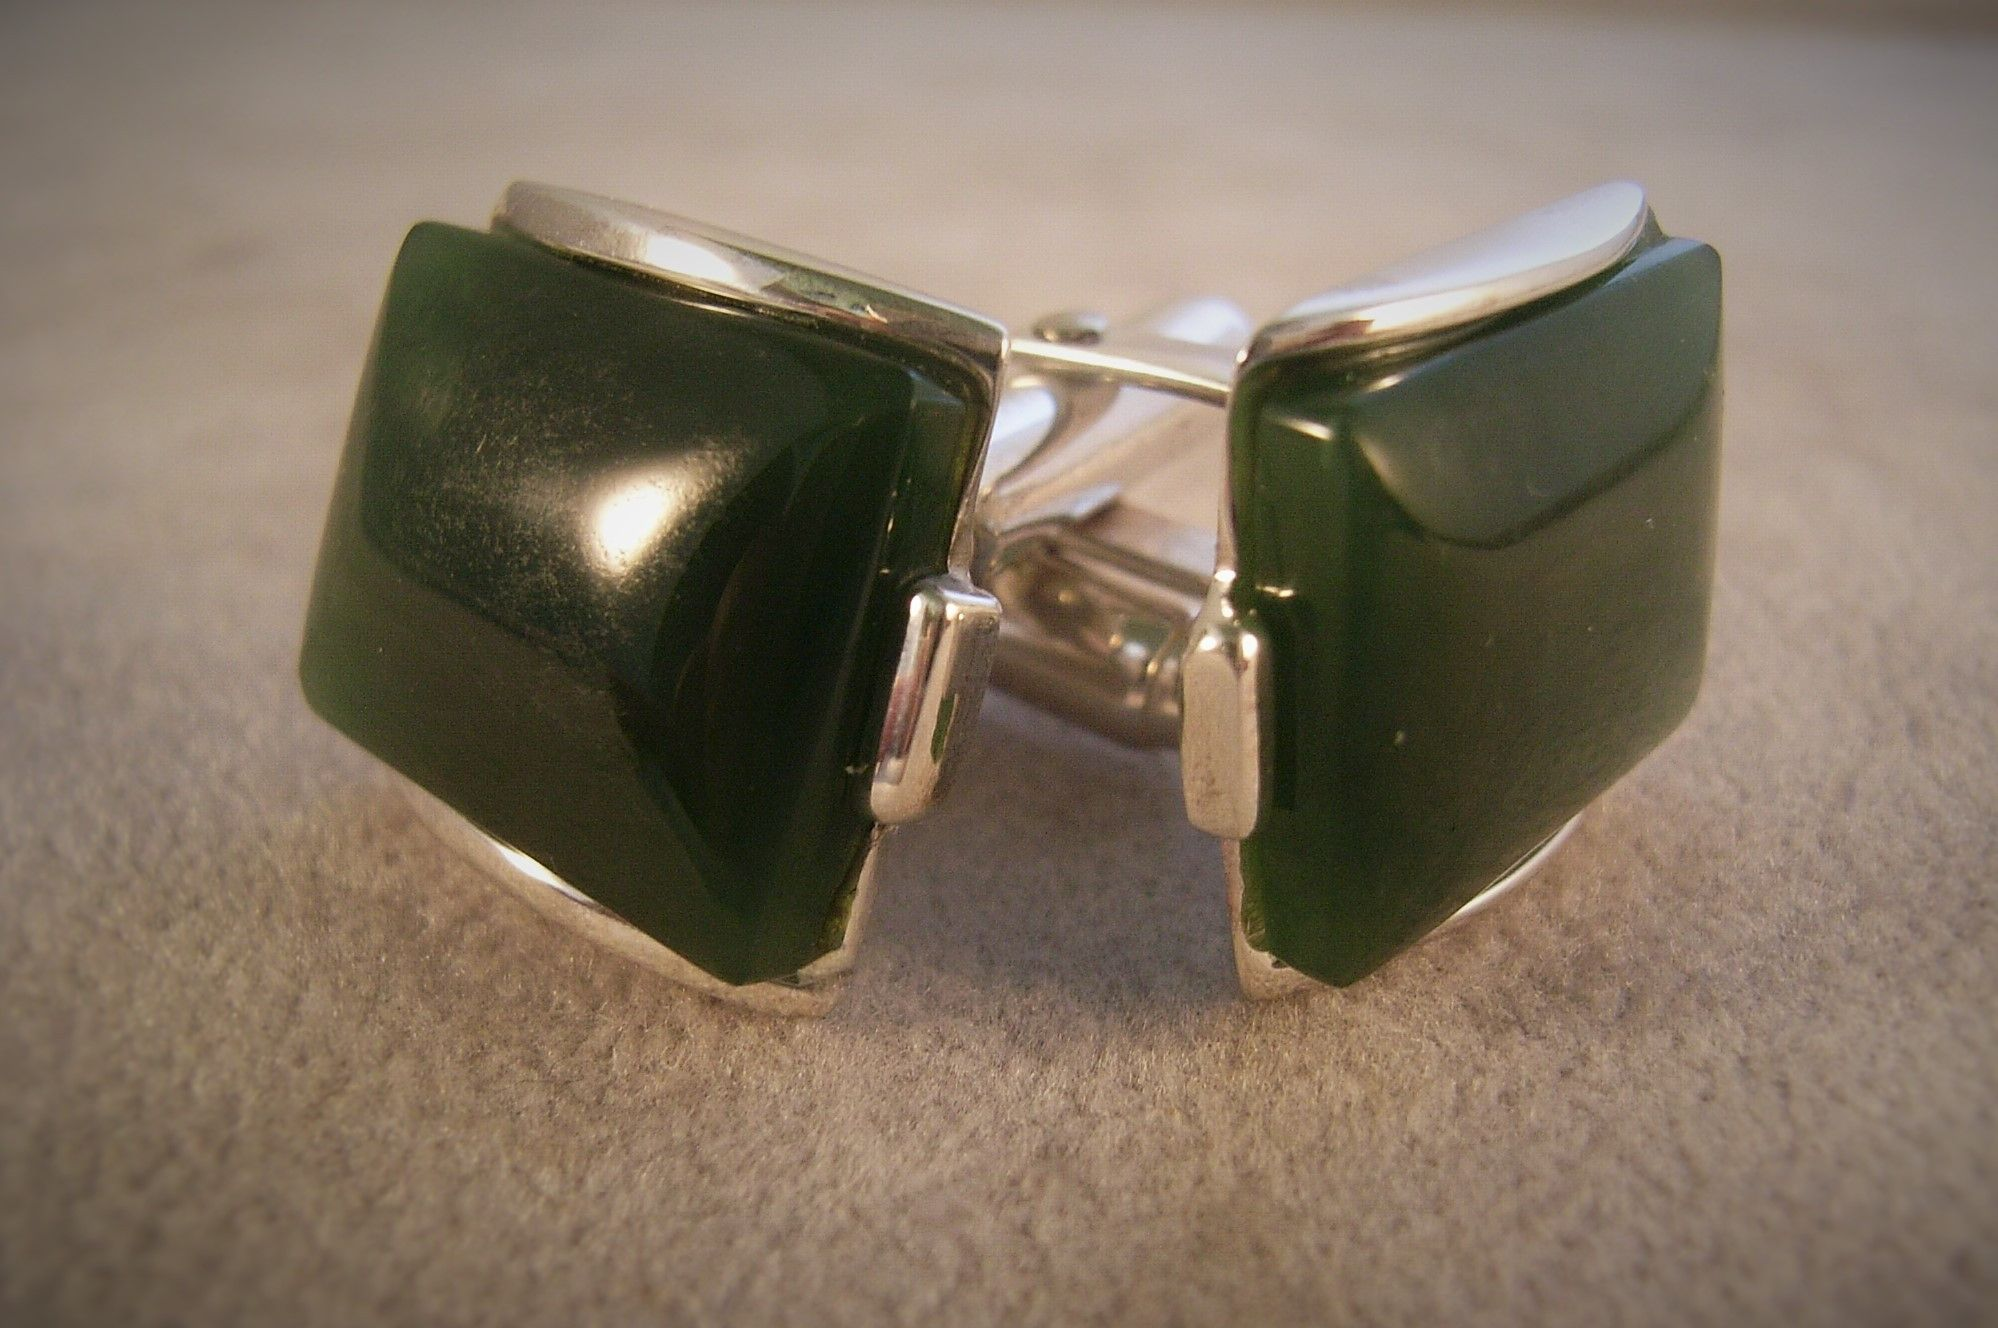 Sterling Silver & jade cufflinks, Men's accessory, New zealand jade, men's fashion, qualified jeweller, made to order.Contact us www.tpgoldsmiths.co.nz